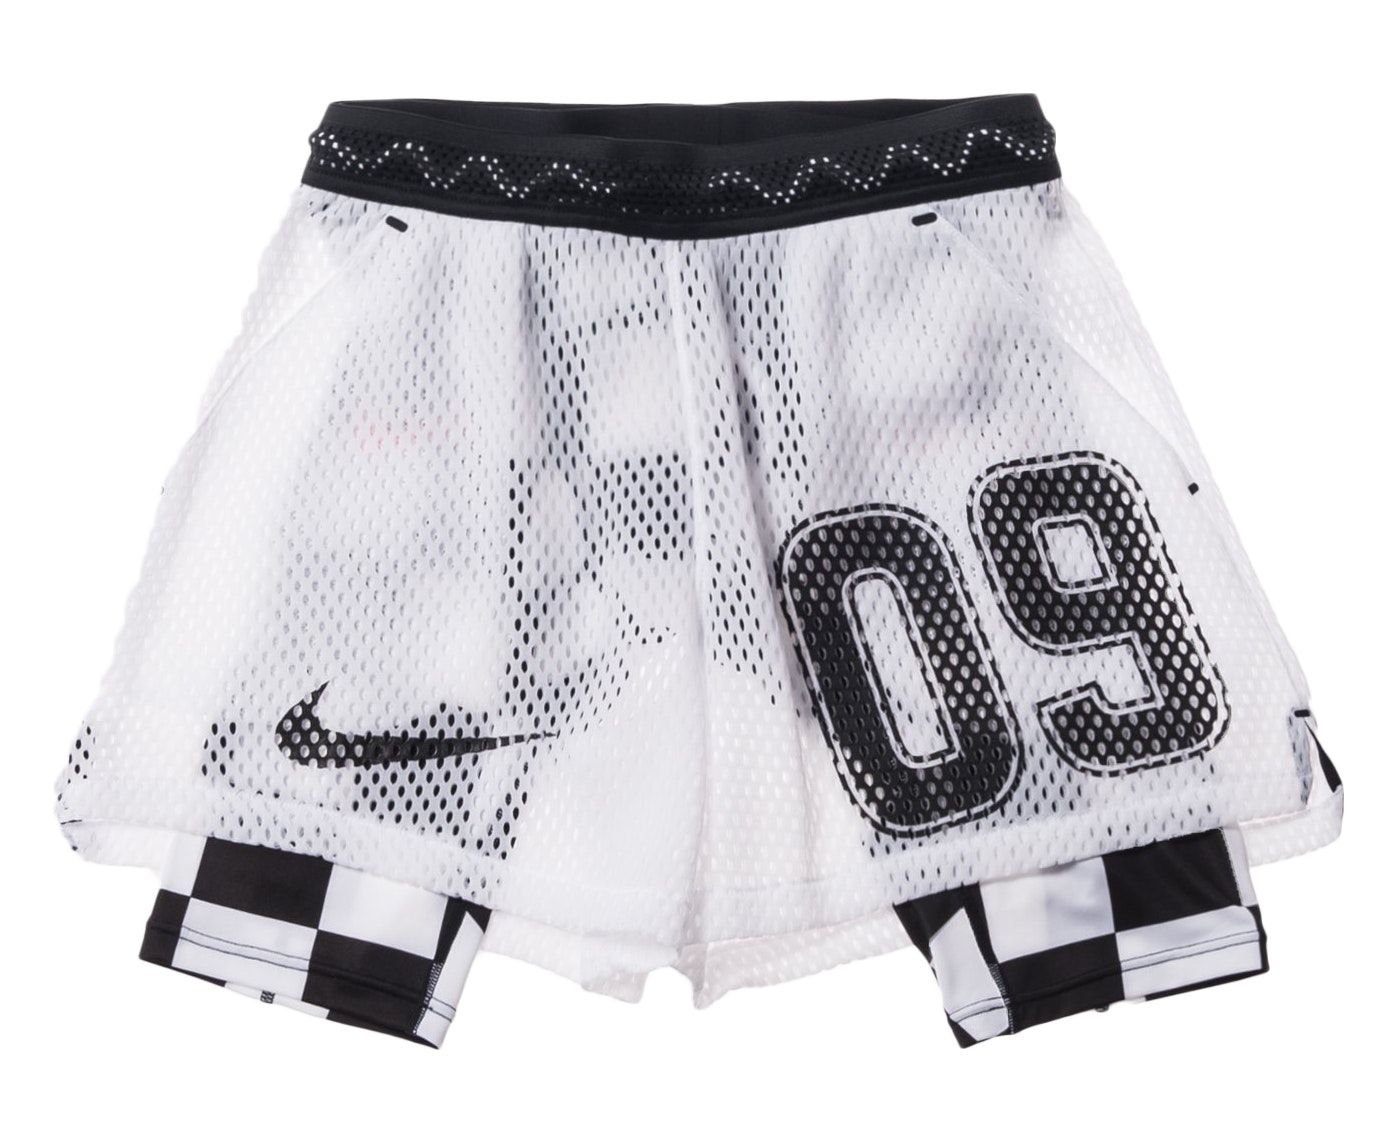 c9746df6 Check out the Nikelab x OFF-WHITE Mercurial NRG X Short White available on  StockX